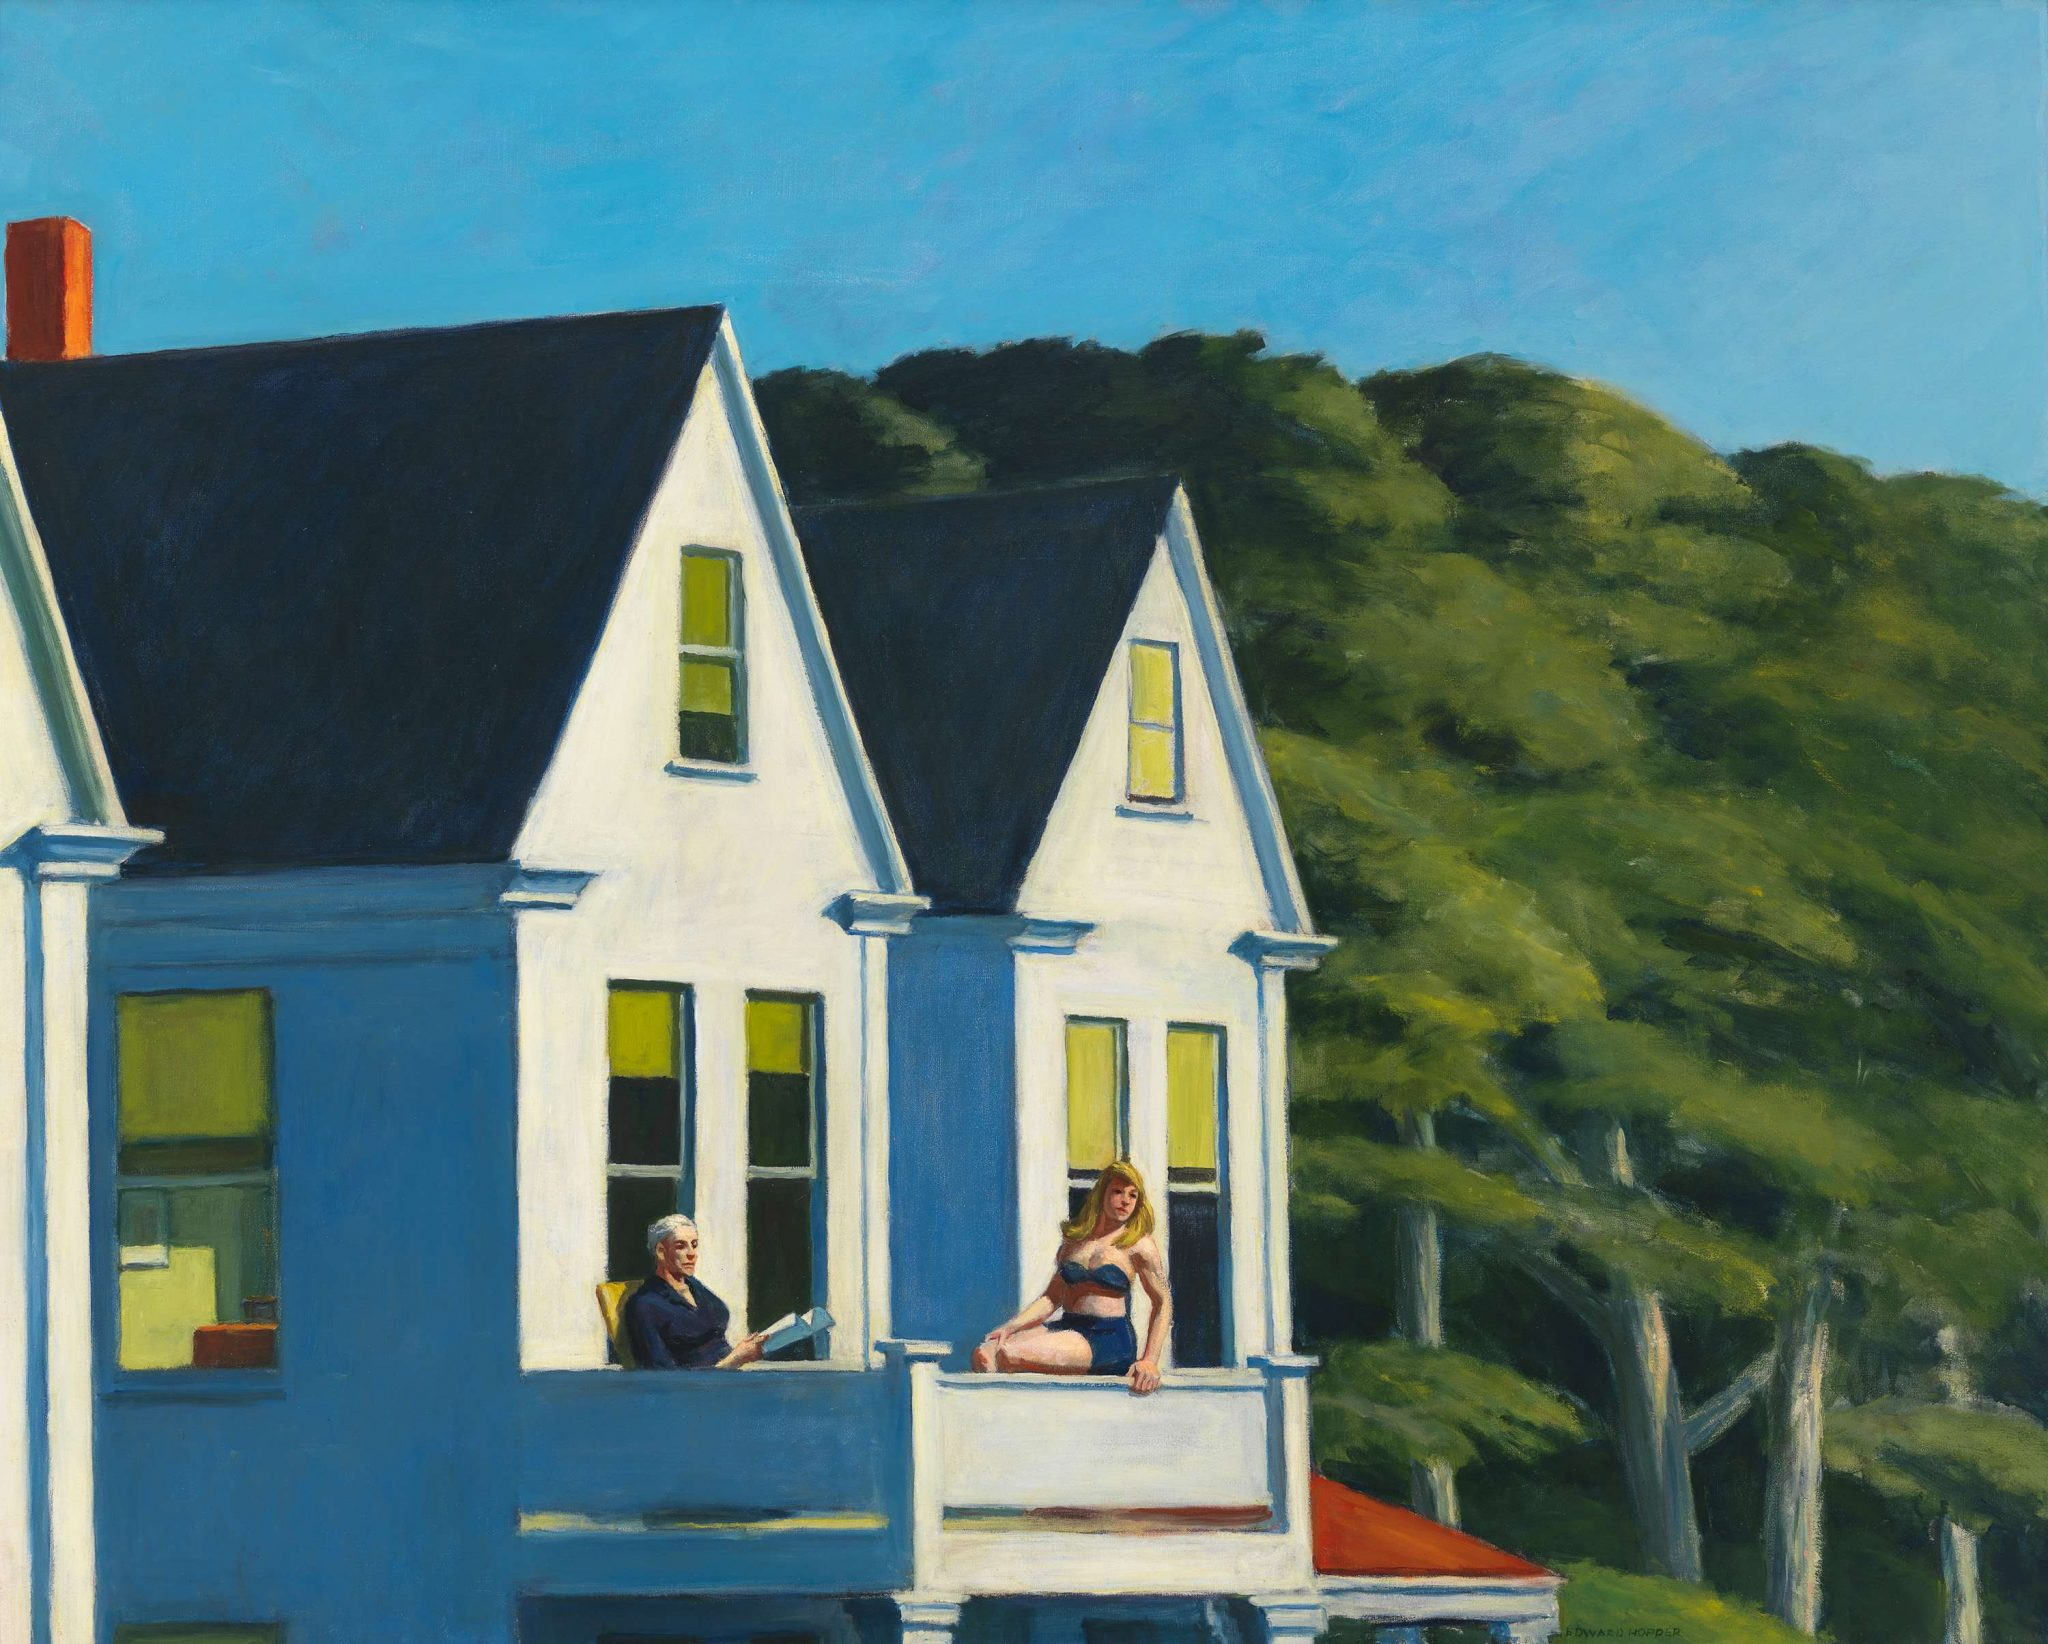 ATLAS-OF-PLACES-EDWARD-HOPPER-AESTHETICS-OF-ALIENATION-GPH-1-2048x1644